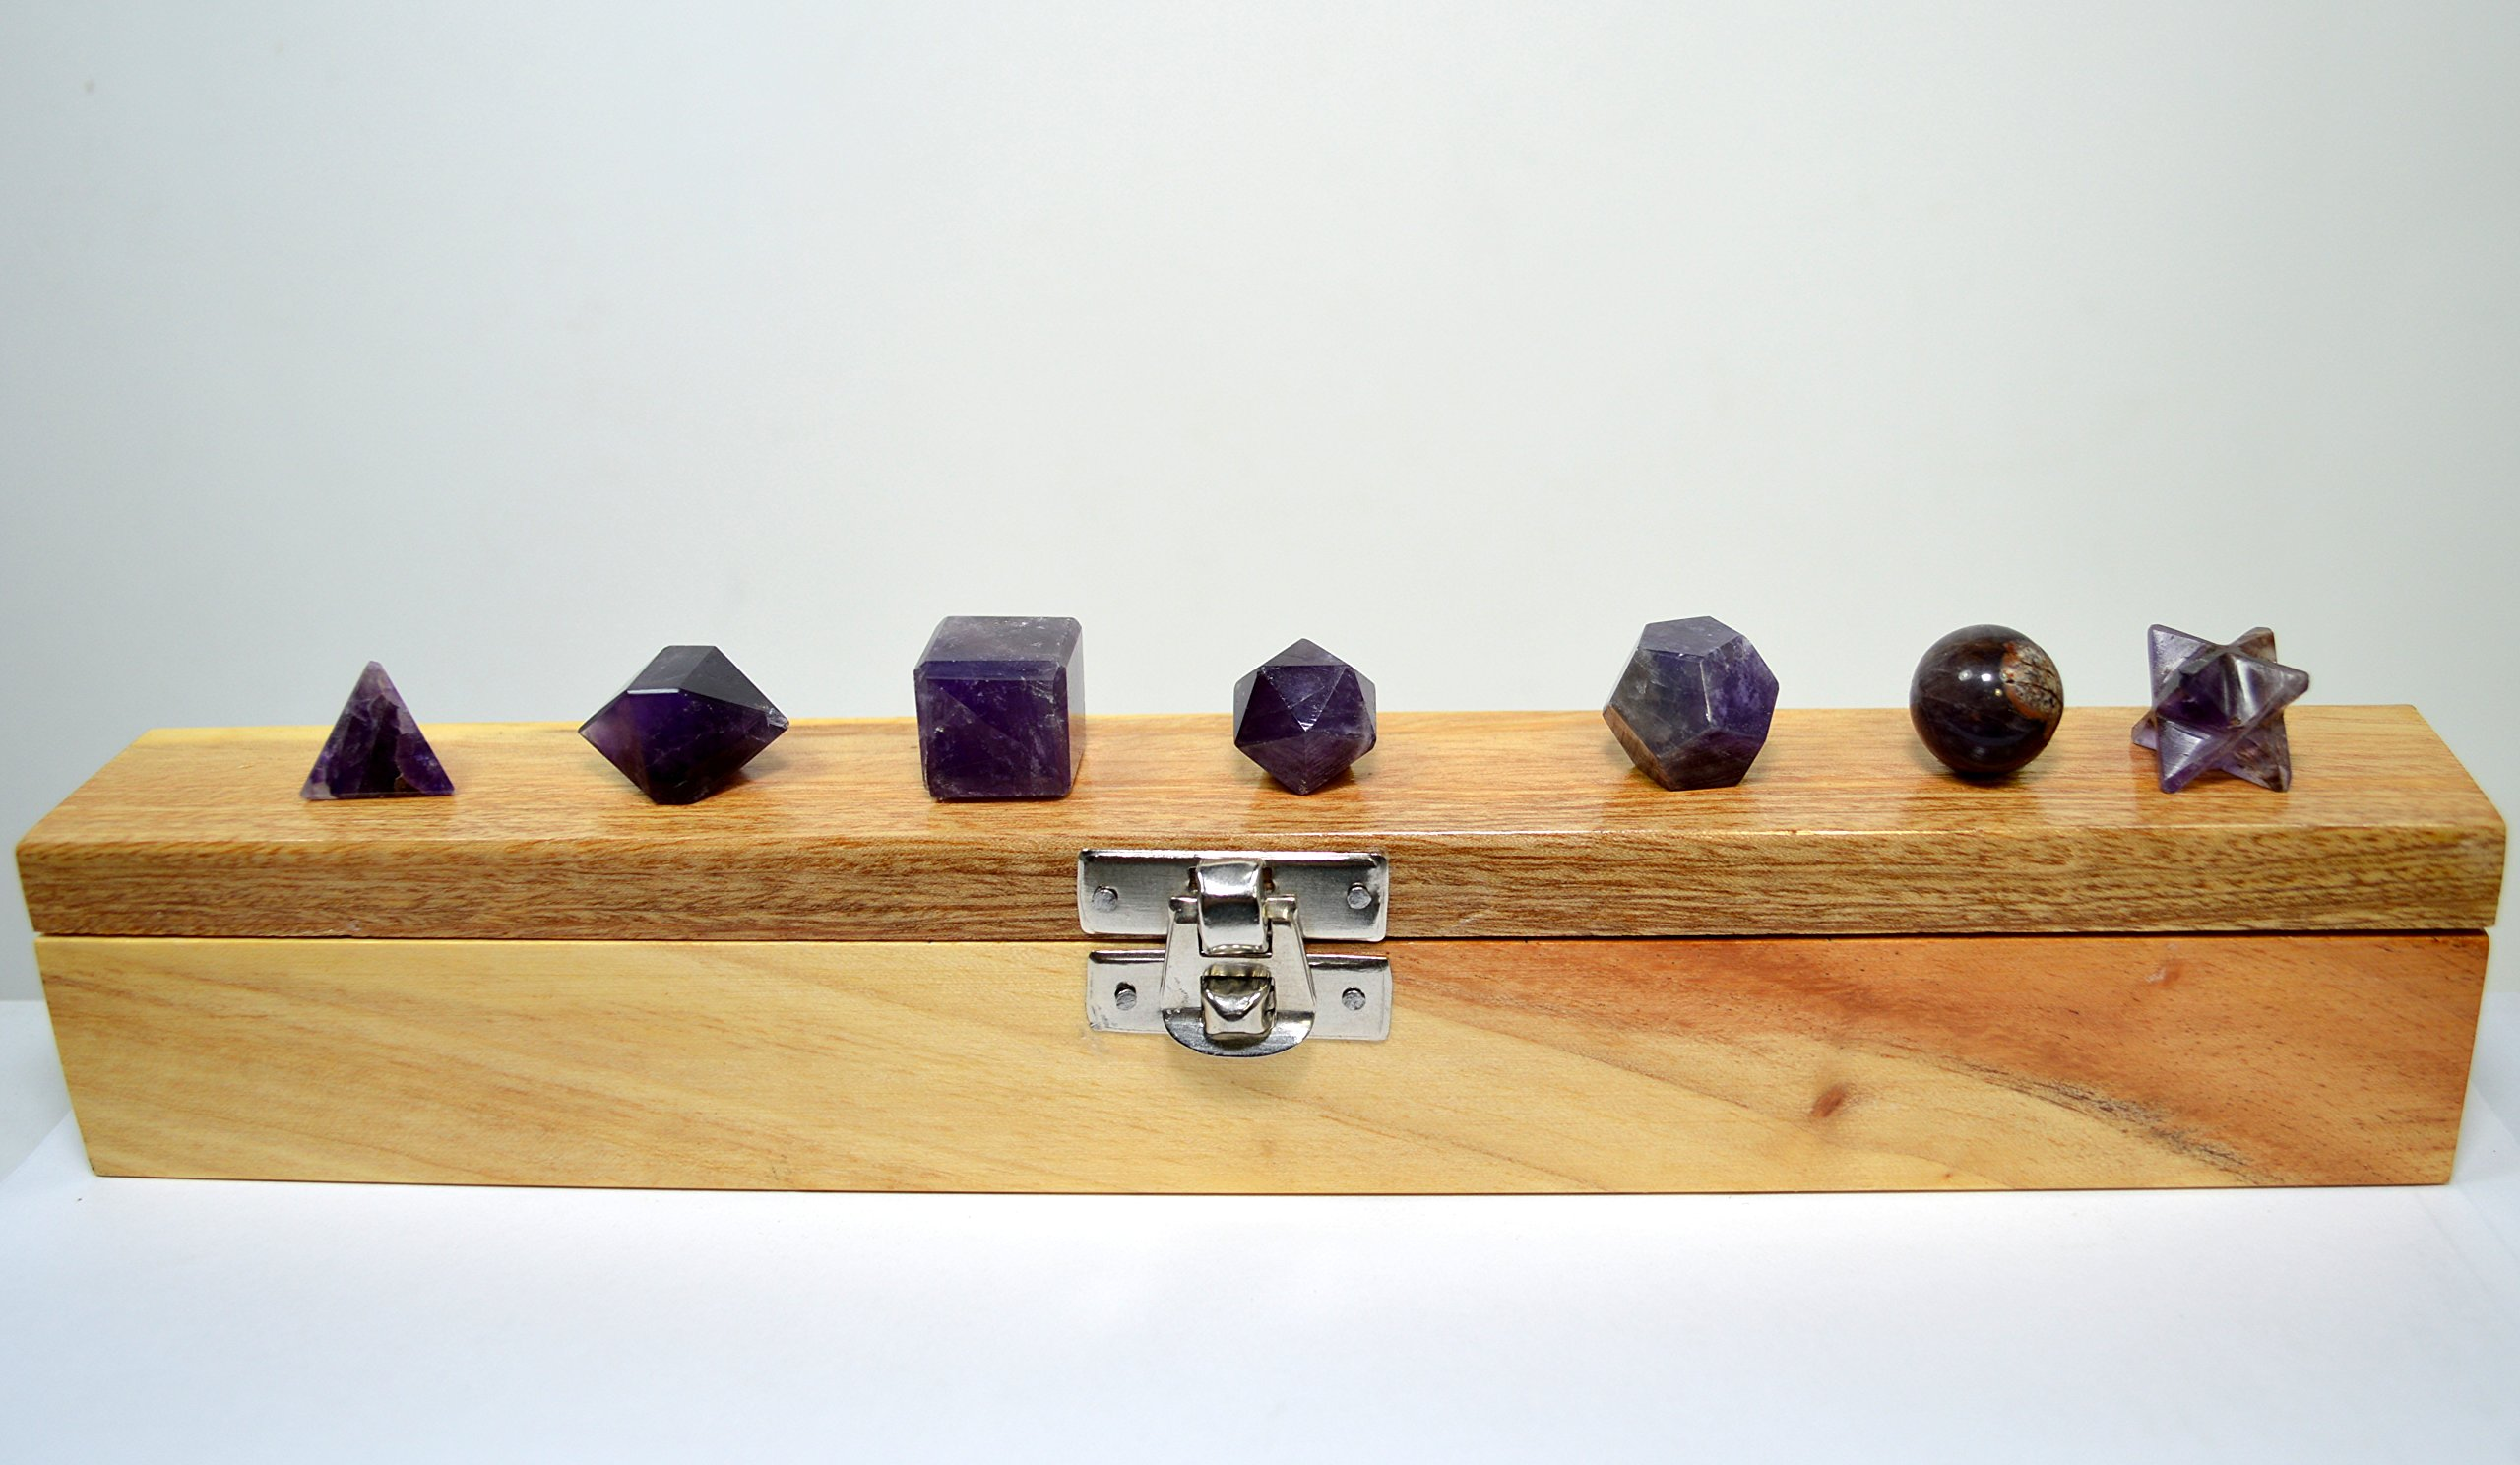 7pcs Amethyst Crystal Platonic Solids Sacred Geometry Set with Wooden Box Natural Purple Stone from India - 1 Set + One Carnelian Merkaba Star